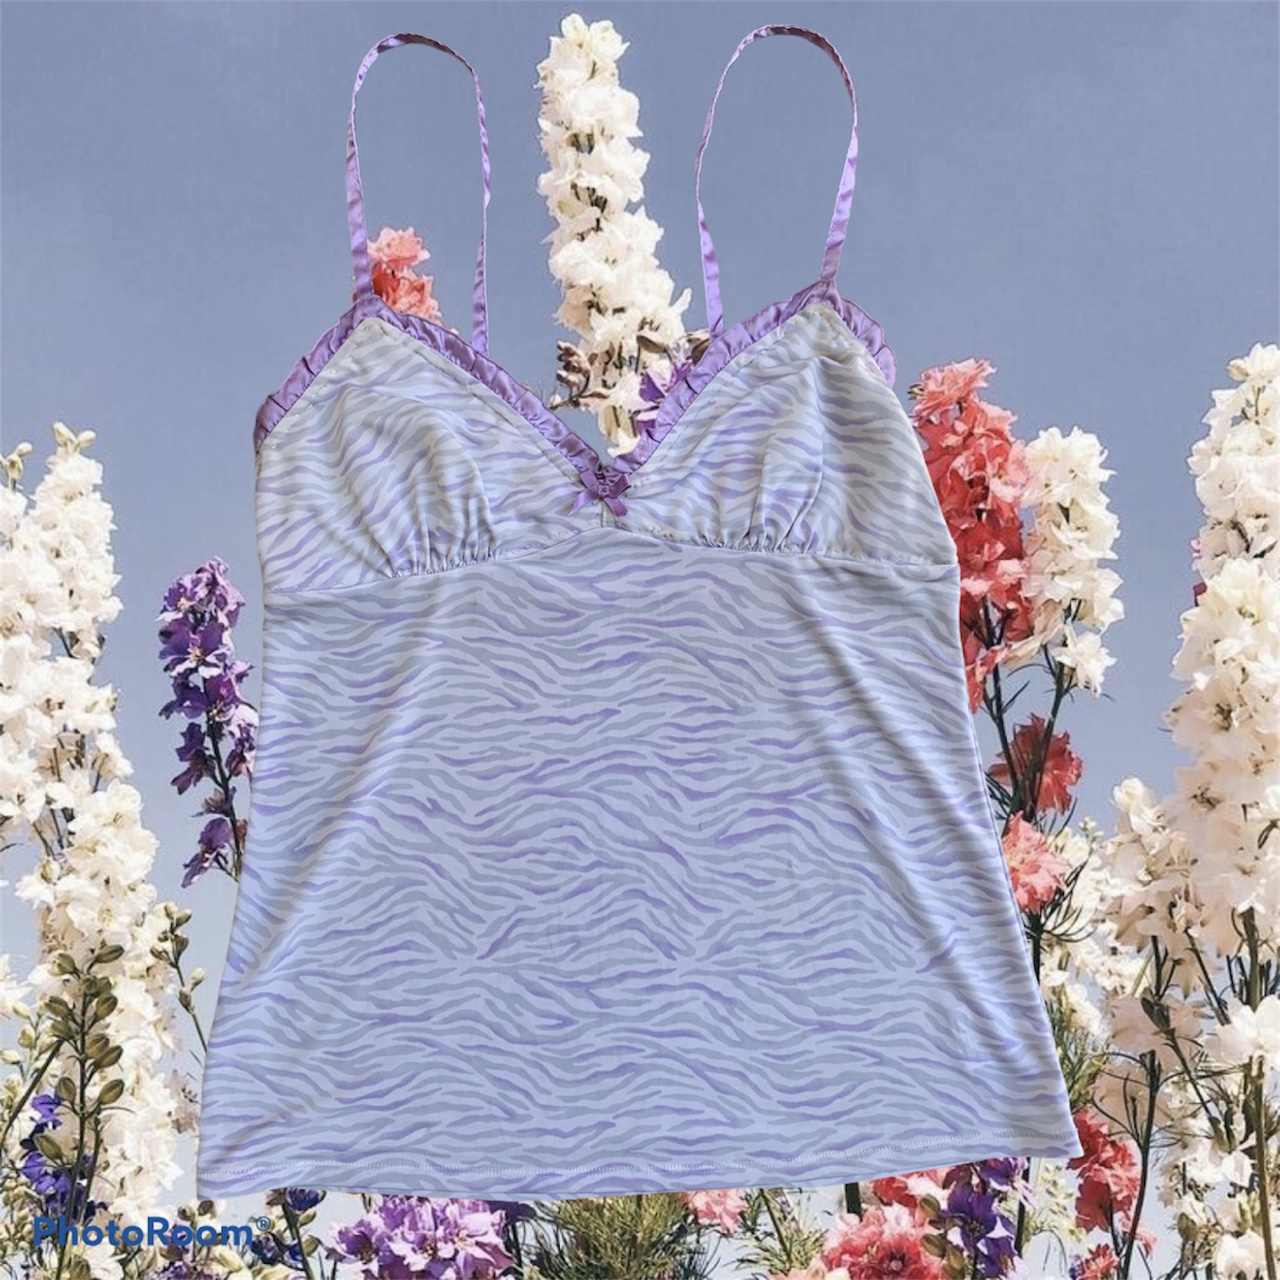 Product Image 1 - Y2k/Chic/Retro intimate cami top💟  It's a